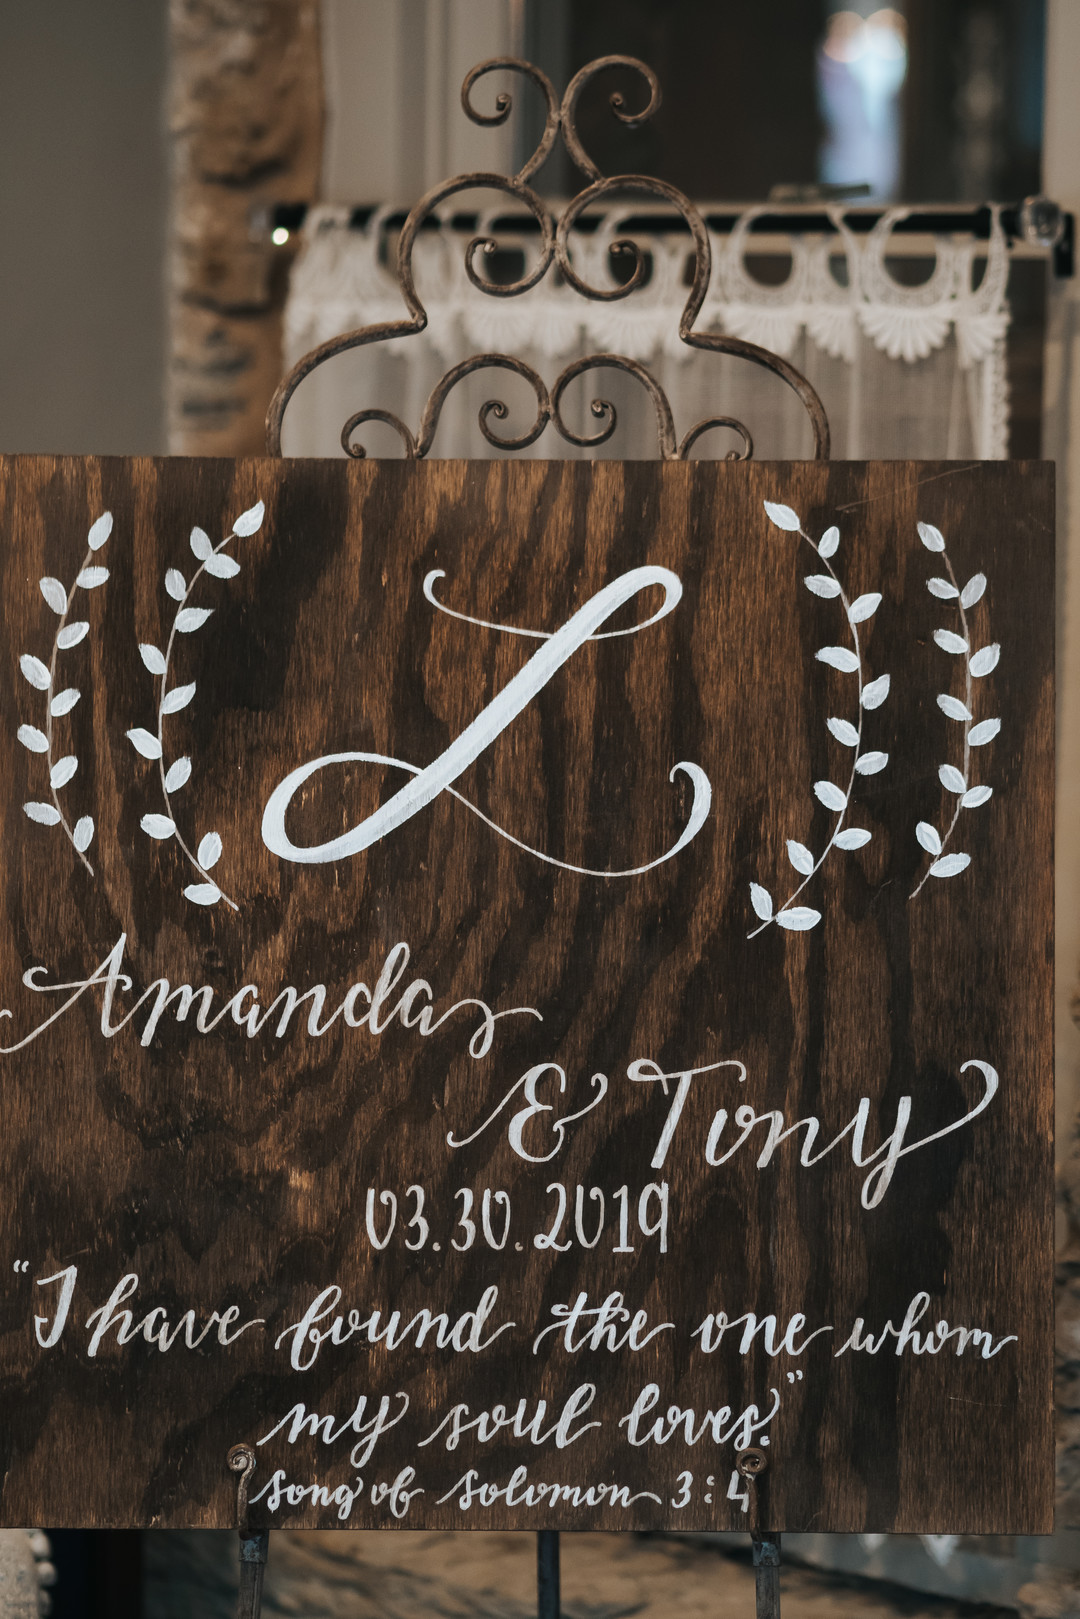 Wedding sign: Beautiful Illinois wedding at Riverside Receptions captured by Windy City Production. See more wedding ideas at CHItheeWED.com!